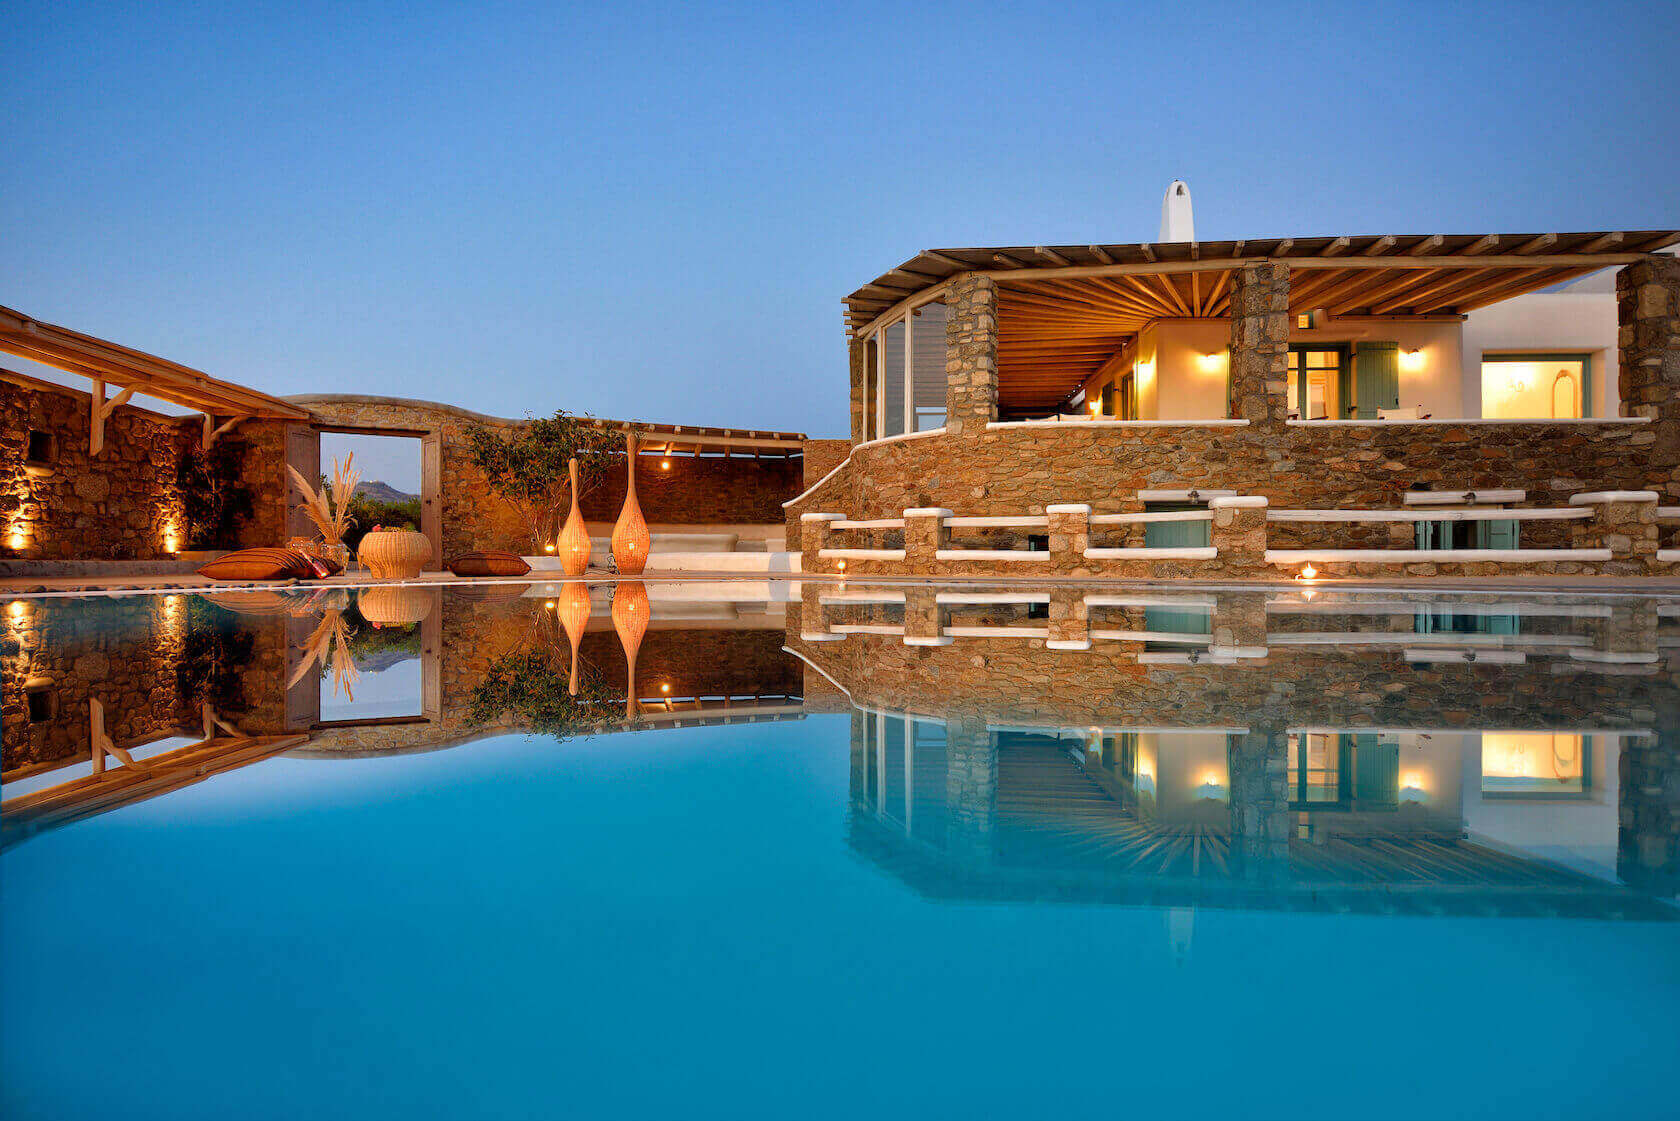 Crystal clear swimming pool in Villa Irida in Mykonos. The exterior of the villa.